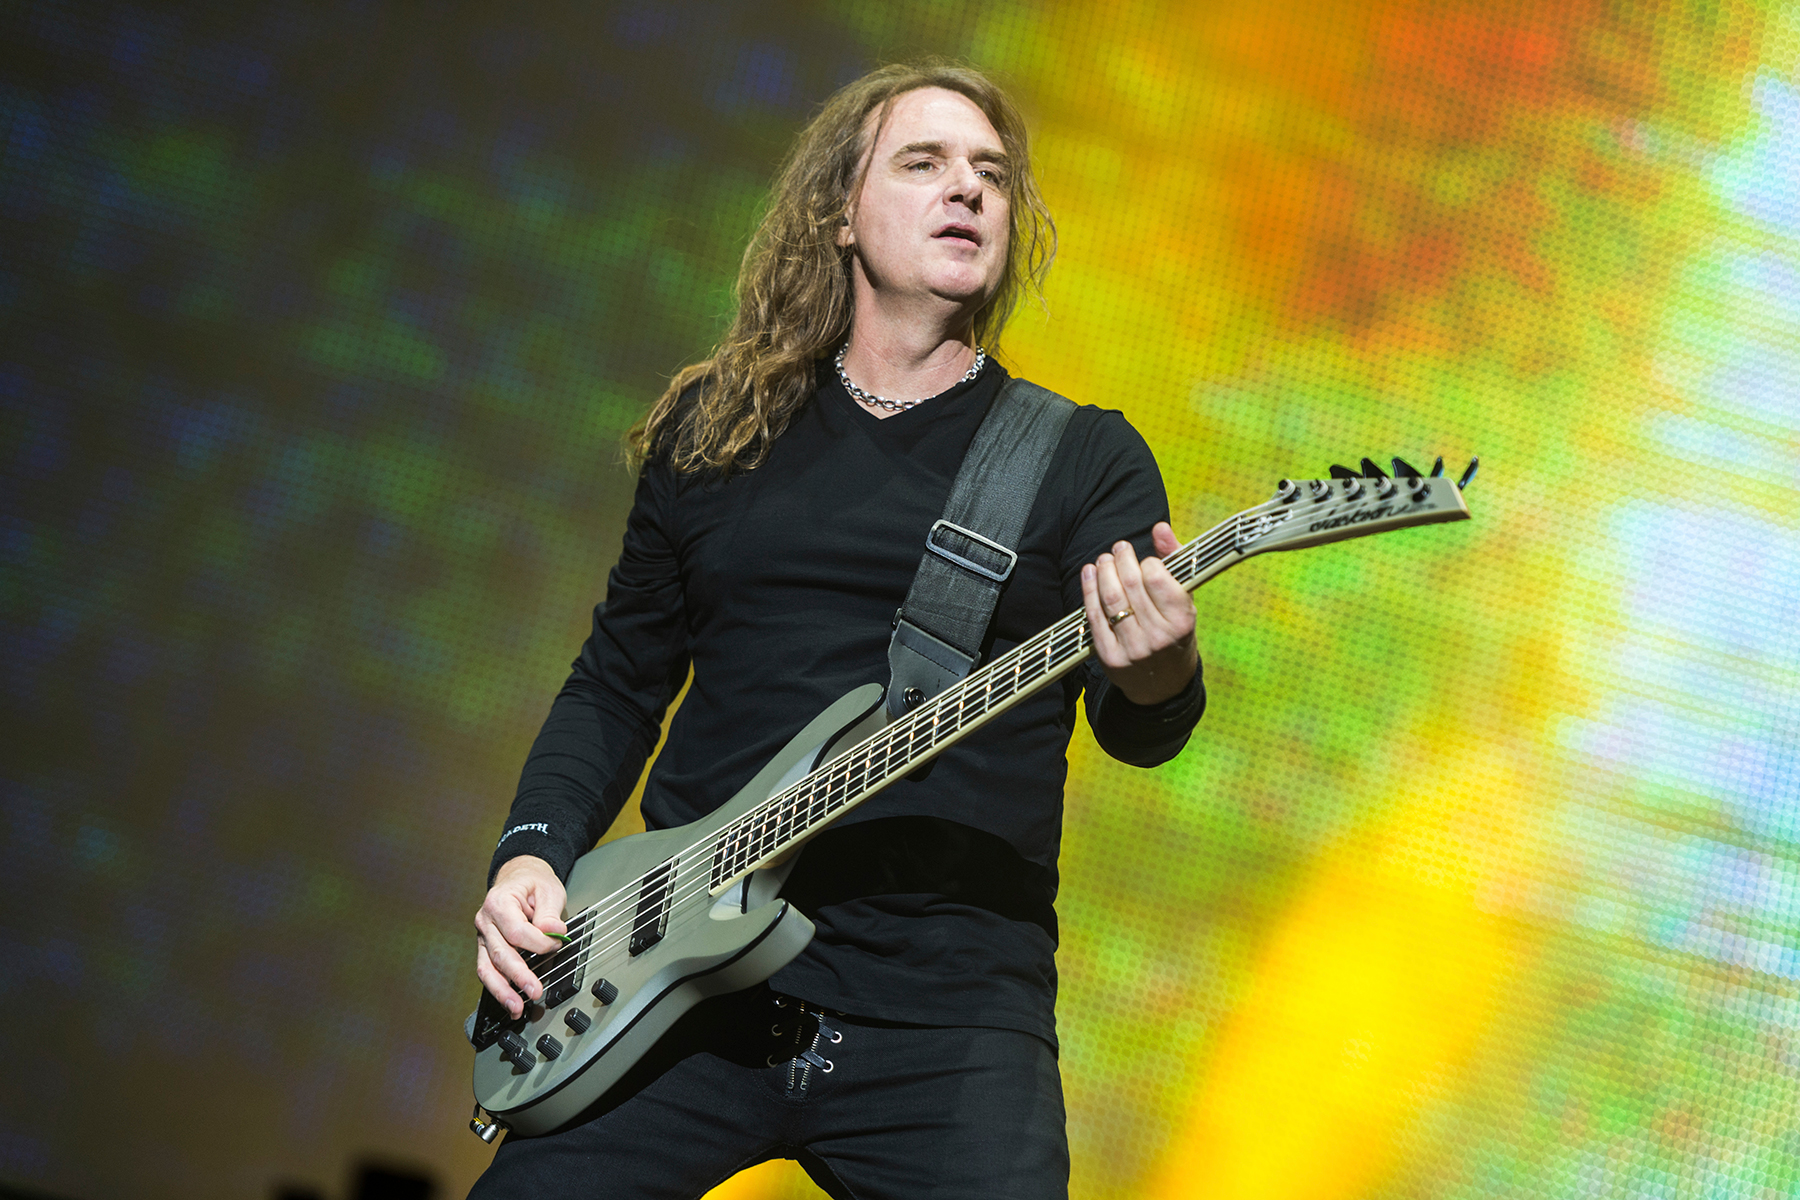 David Warren Ellefson, bass player of US metal band Megadeth, playing on the Harder Stage of the Wacken Open Air Festivals in Wacken, Germany, 04 August 2017. The Wacken Open Air takes place between 03 and 05 August 2017. Photo by: Christophe Gateau/picture-alliance/dpa/AP Images